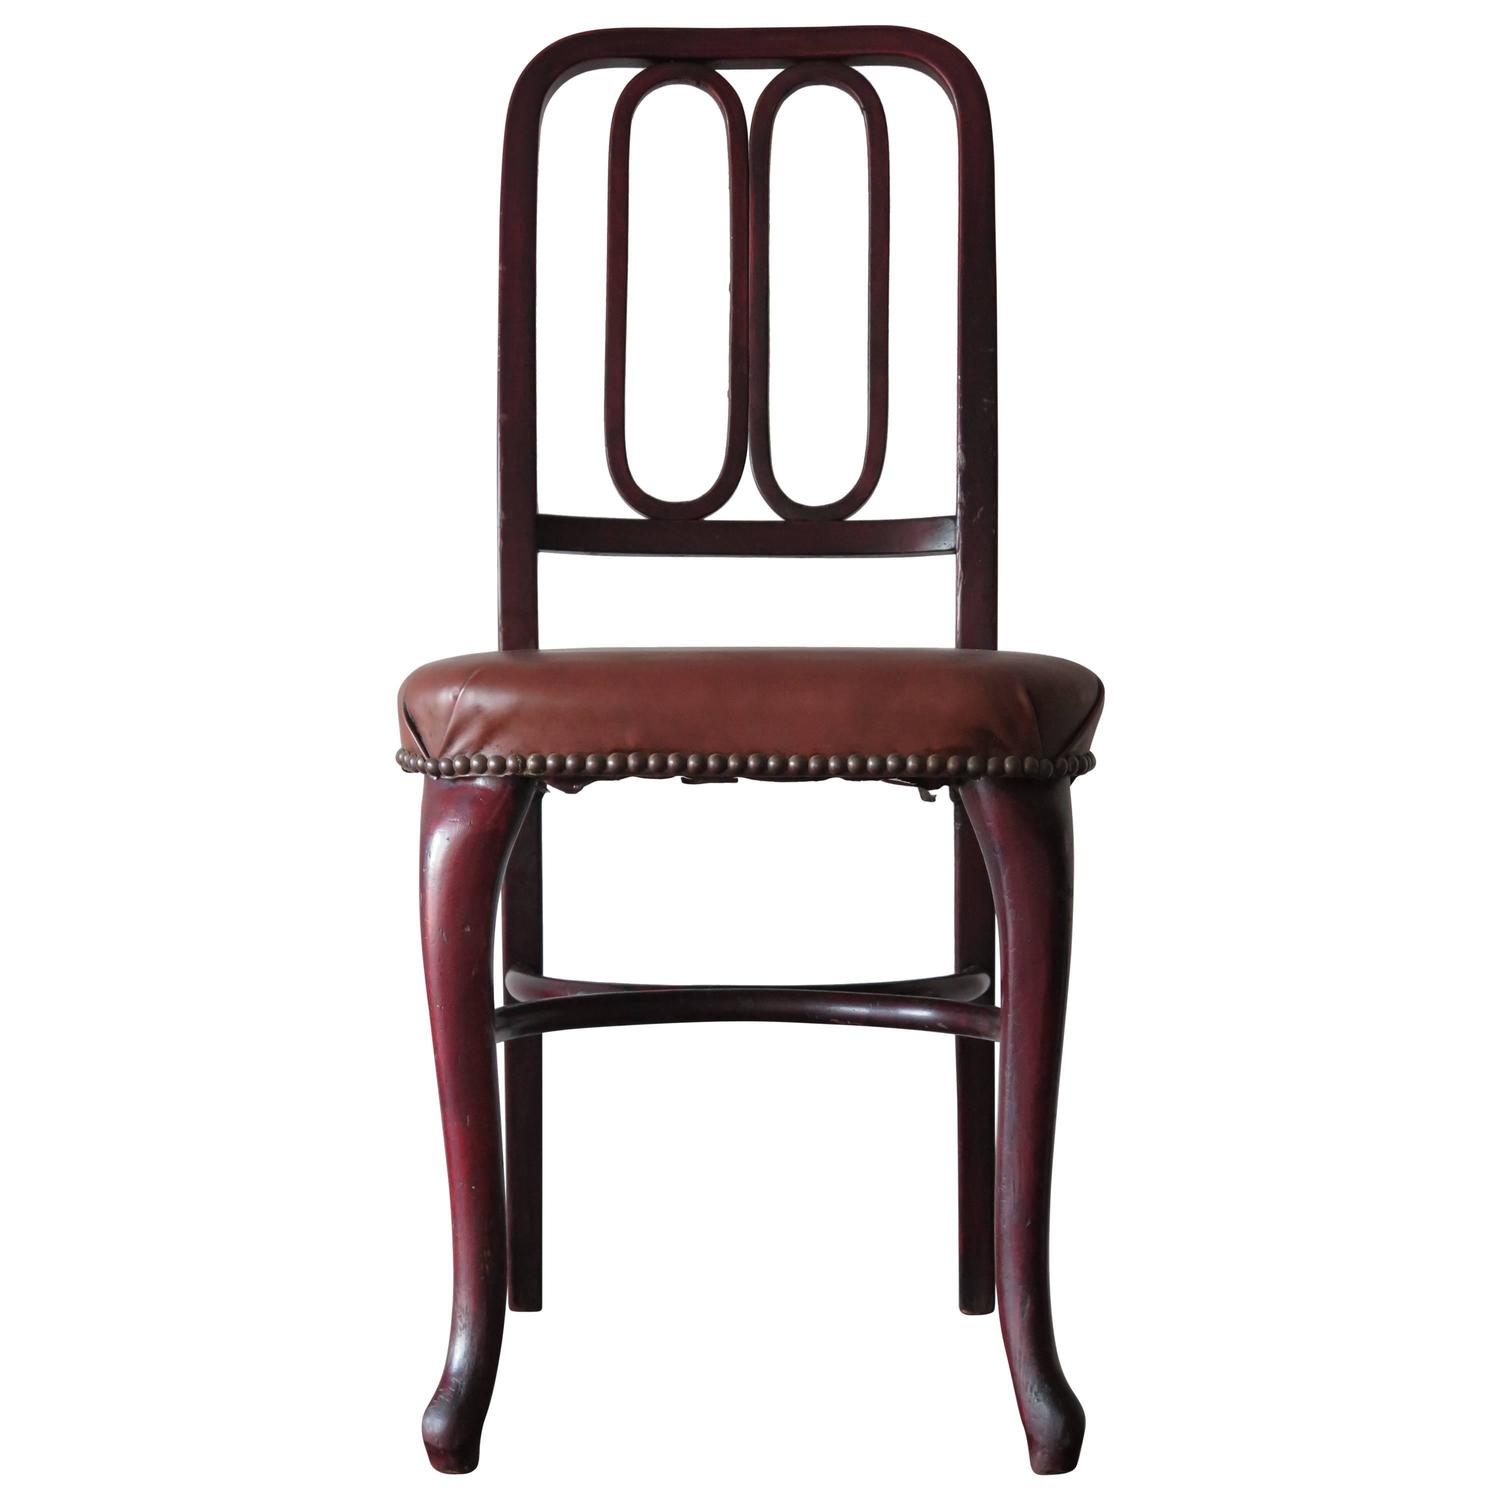 Thonet Bentwood Chair For Sale at 1stdibs